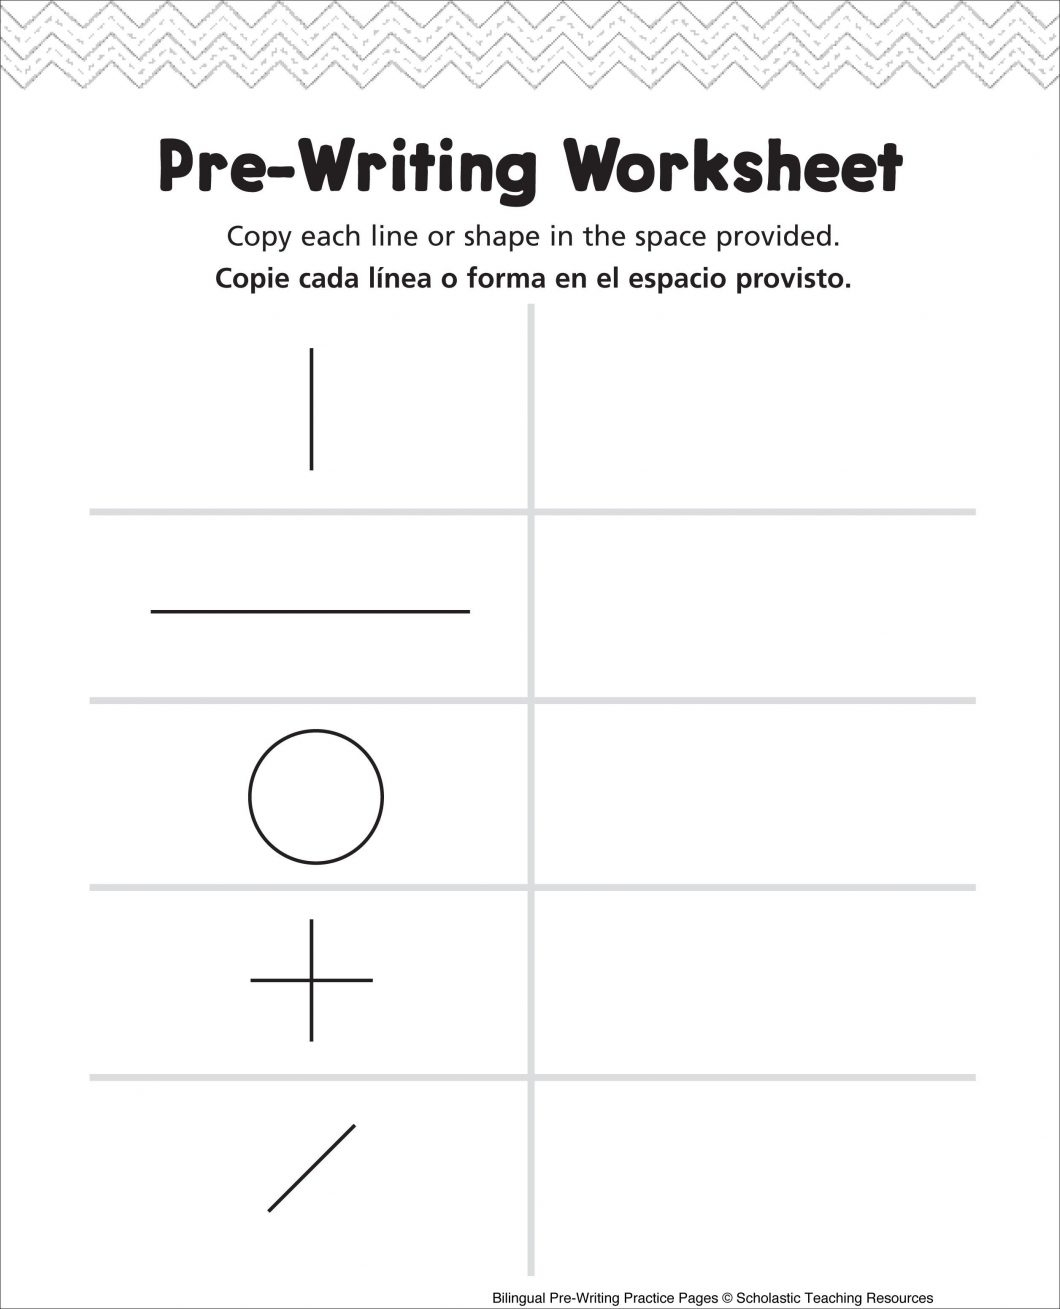 Pre K Writing Worksheets – With For Kg1 Also Printable Preschool | Bilingual Worksheets Printable